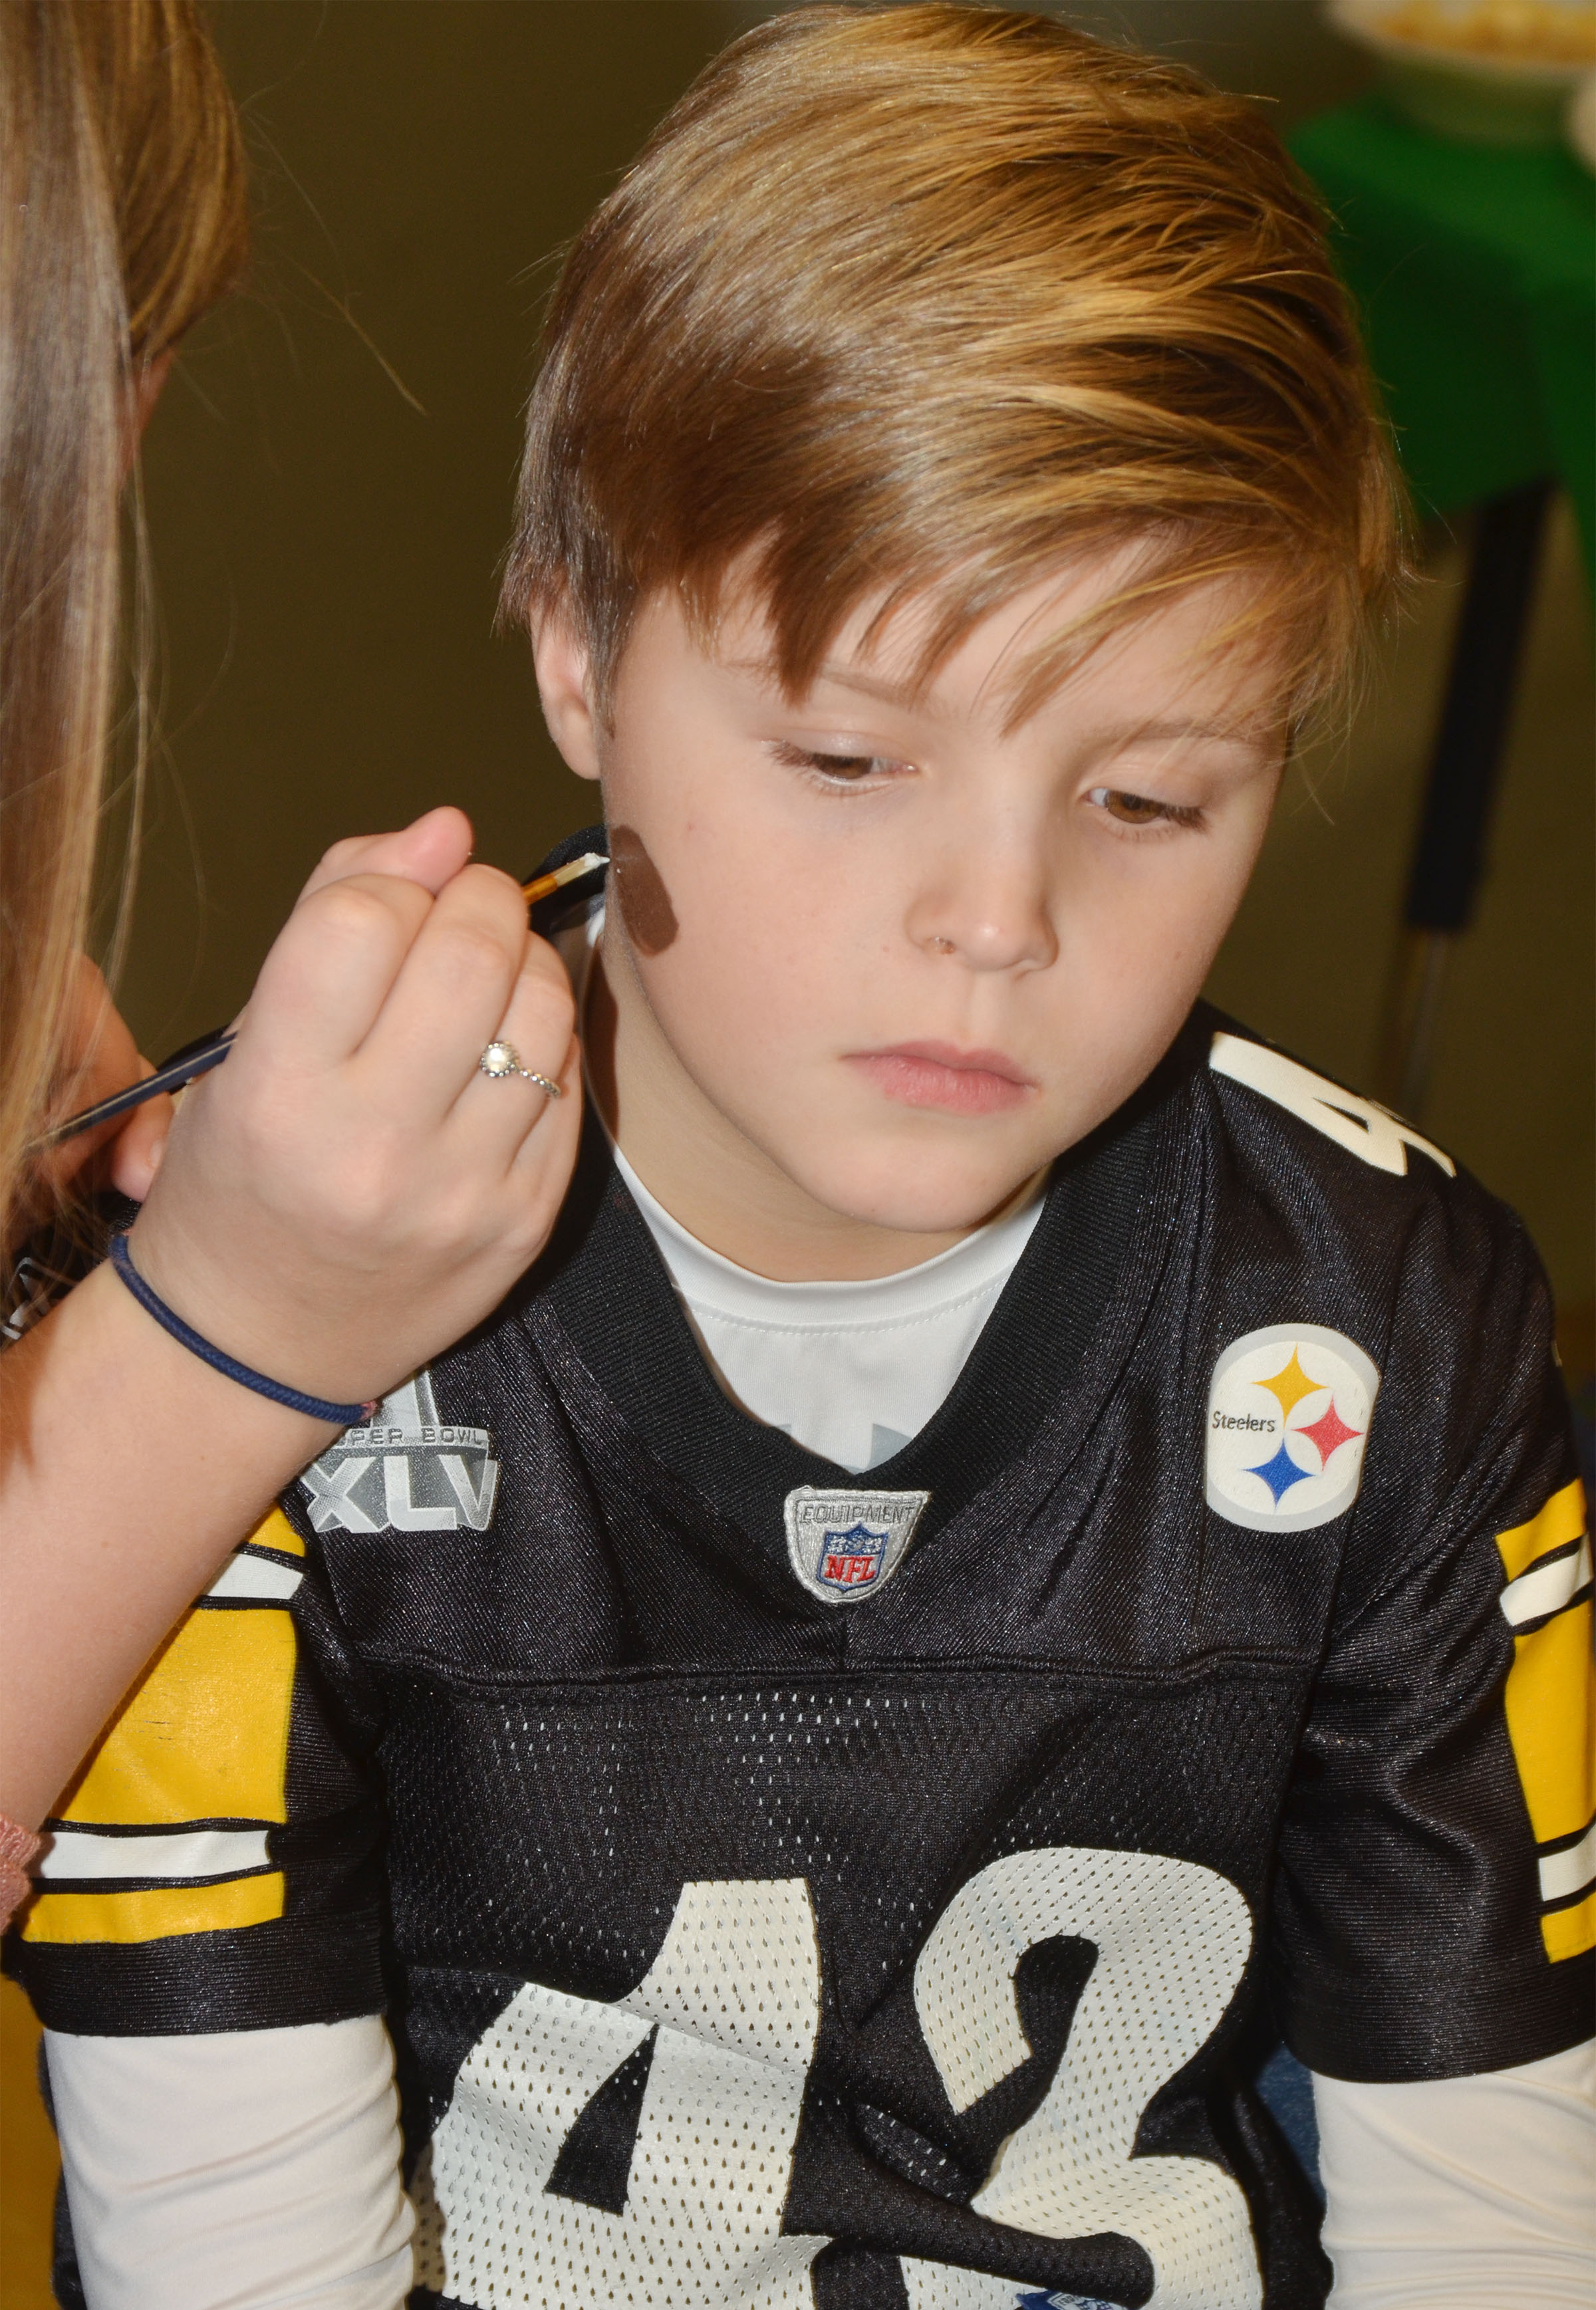 CES second-grader Emerson Gowin has a football painted on his cheek.